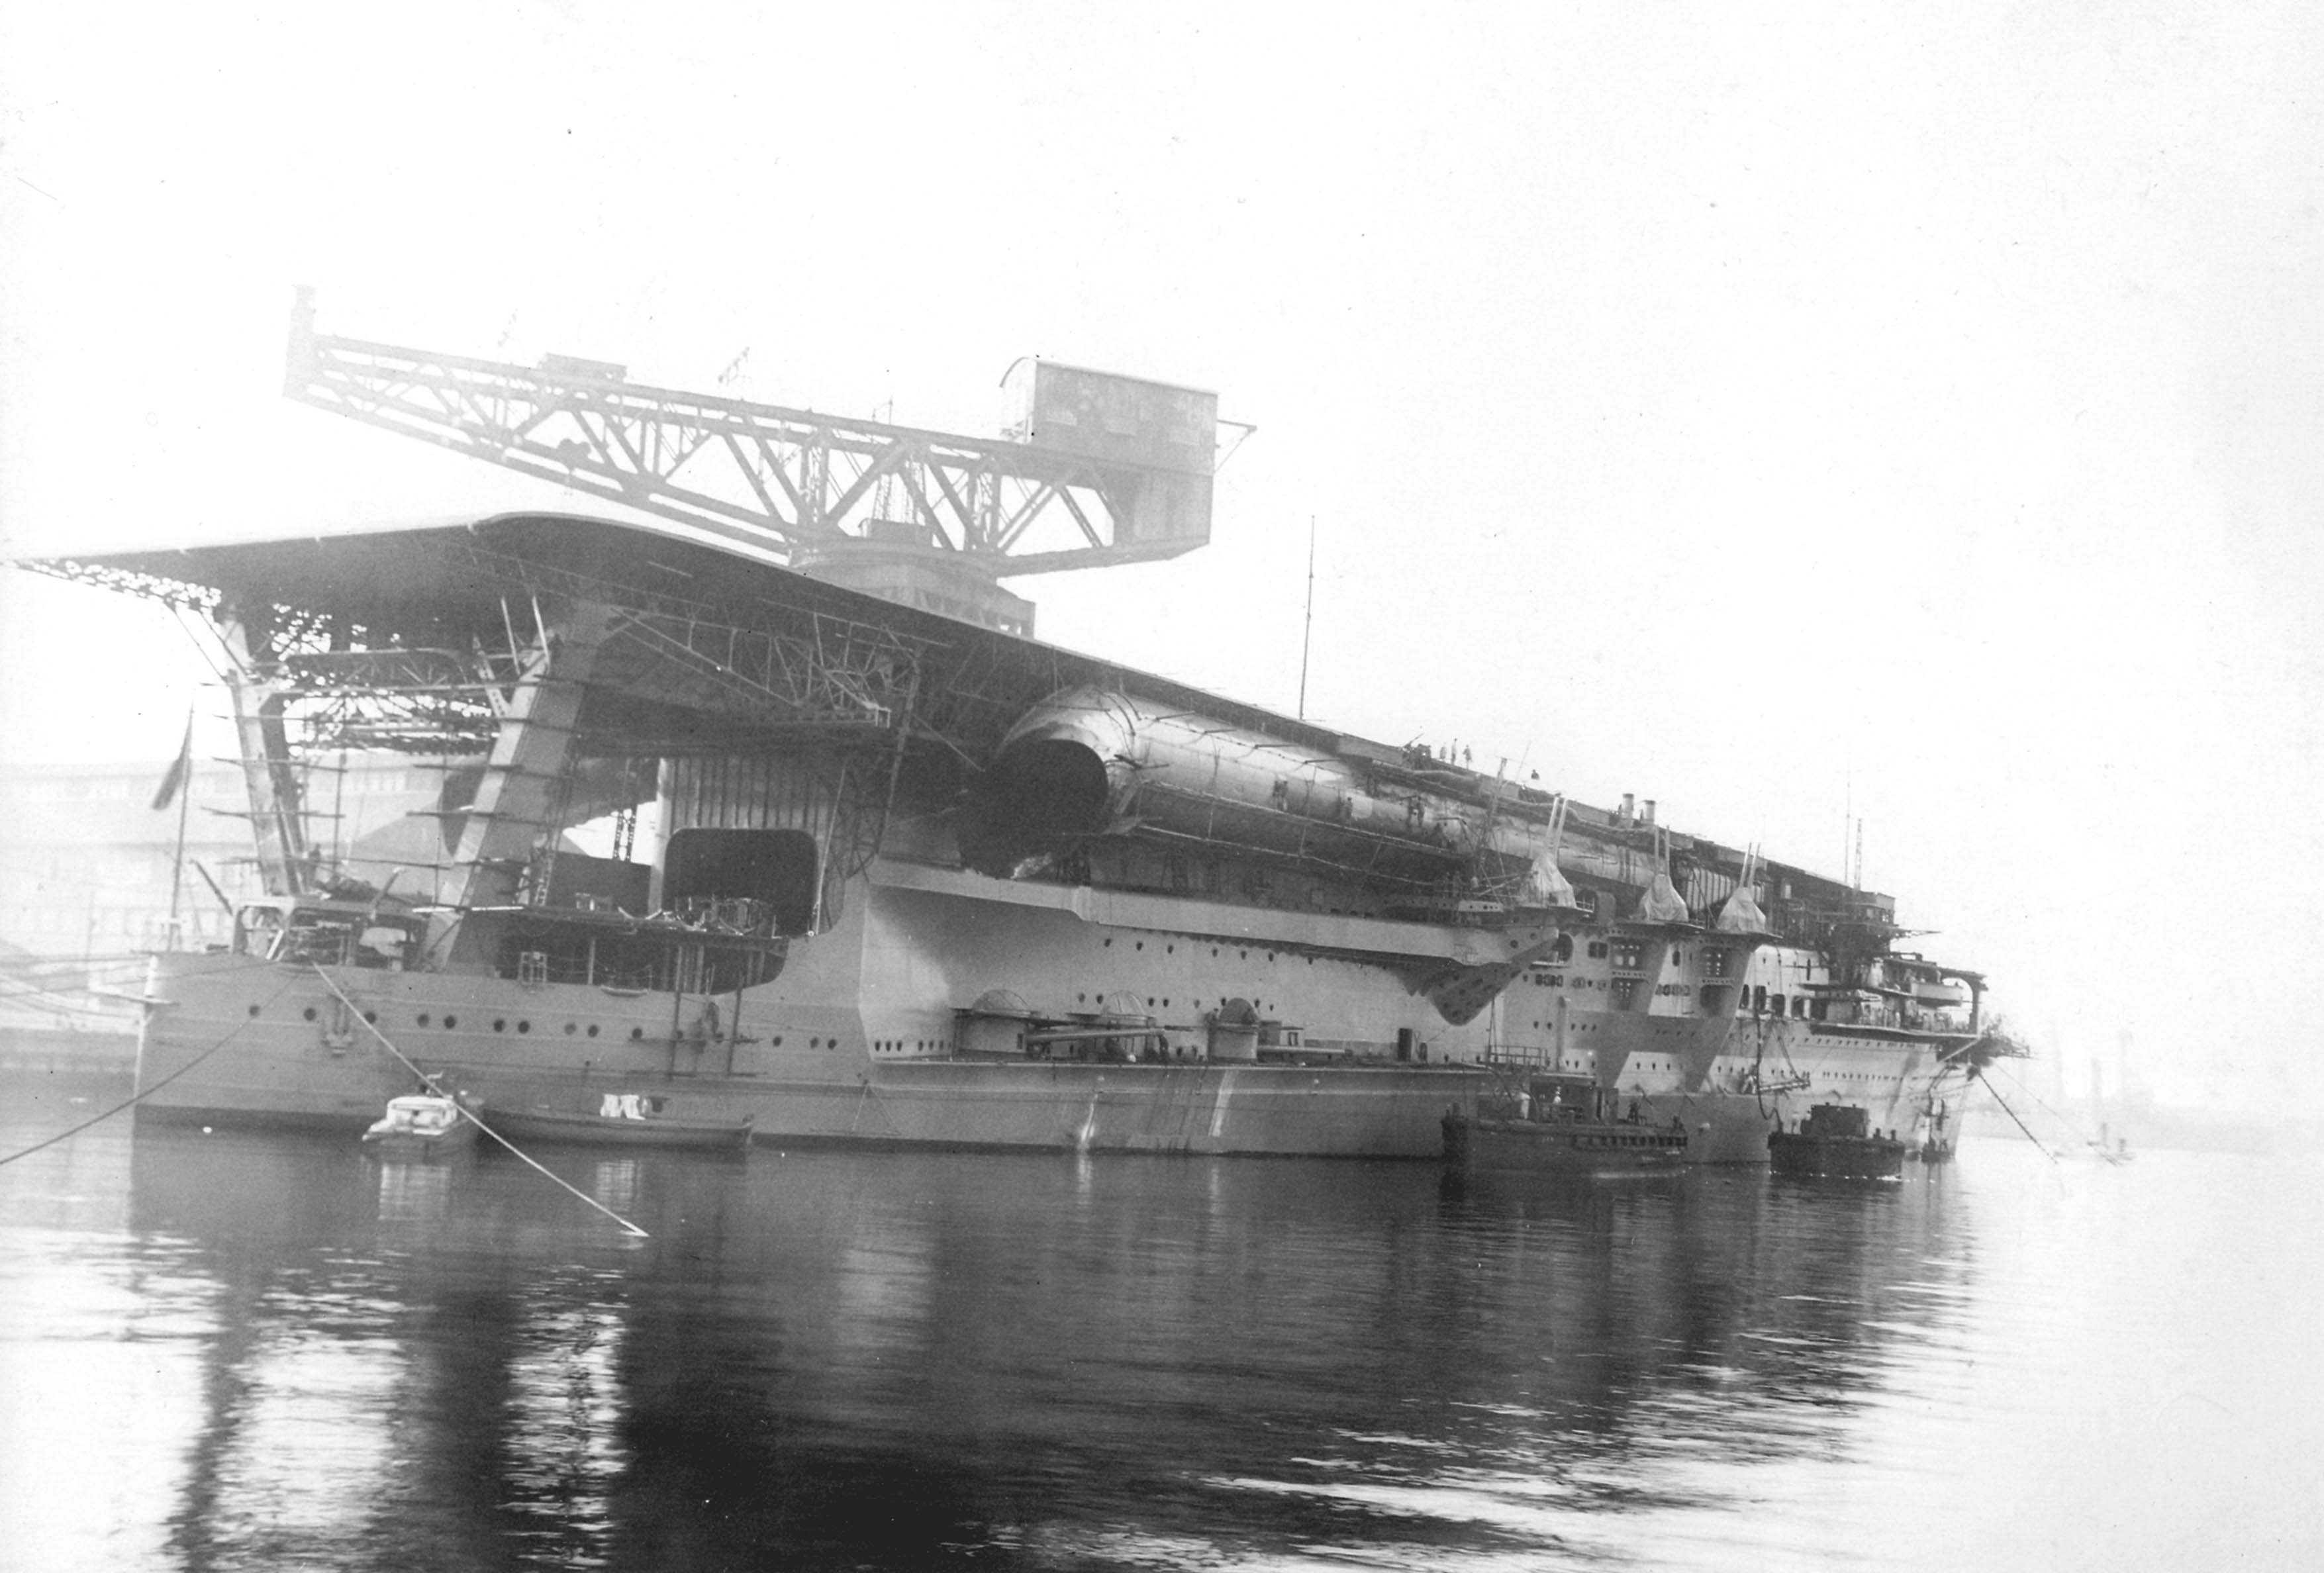 https://upload.wikimedia.org/wikipedia/commons/a/a1/Japanese_Navy_Aircraft_Carrier_Kaga_1928.jpg